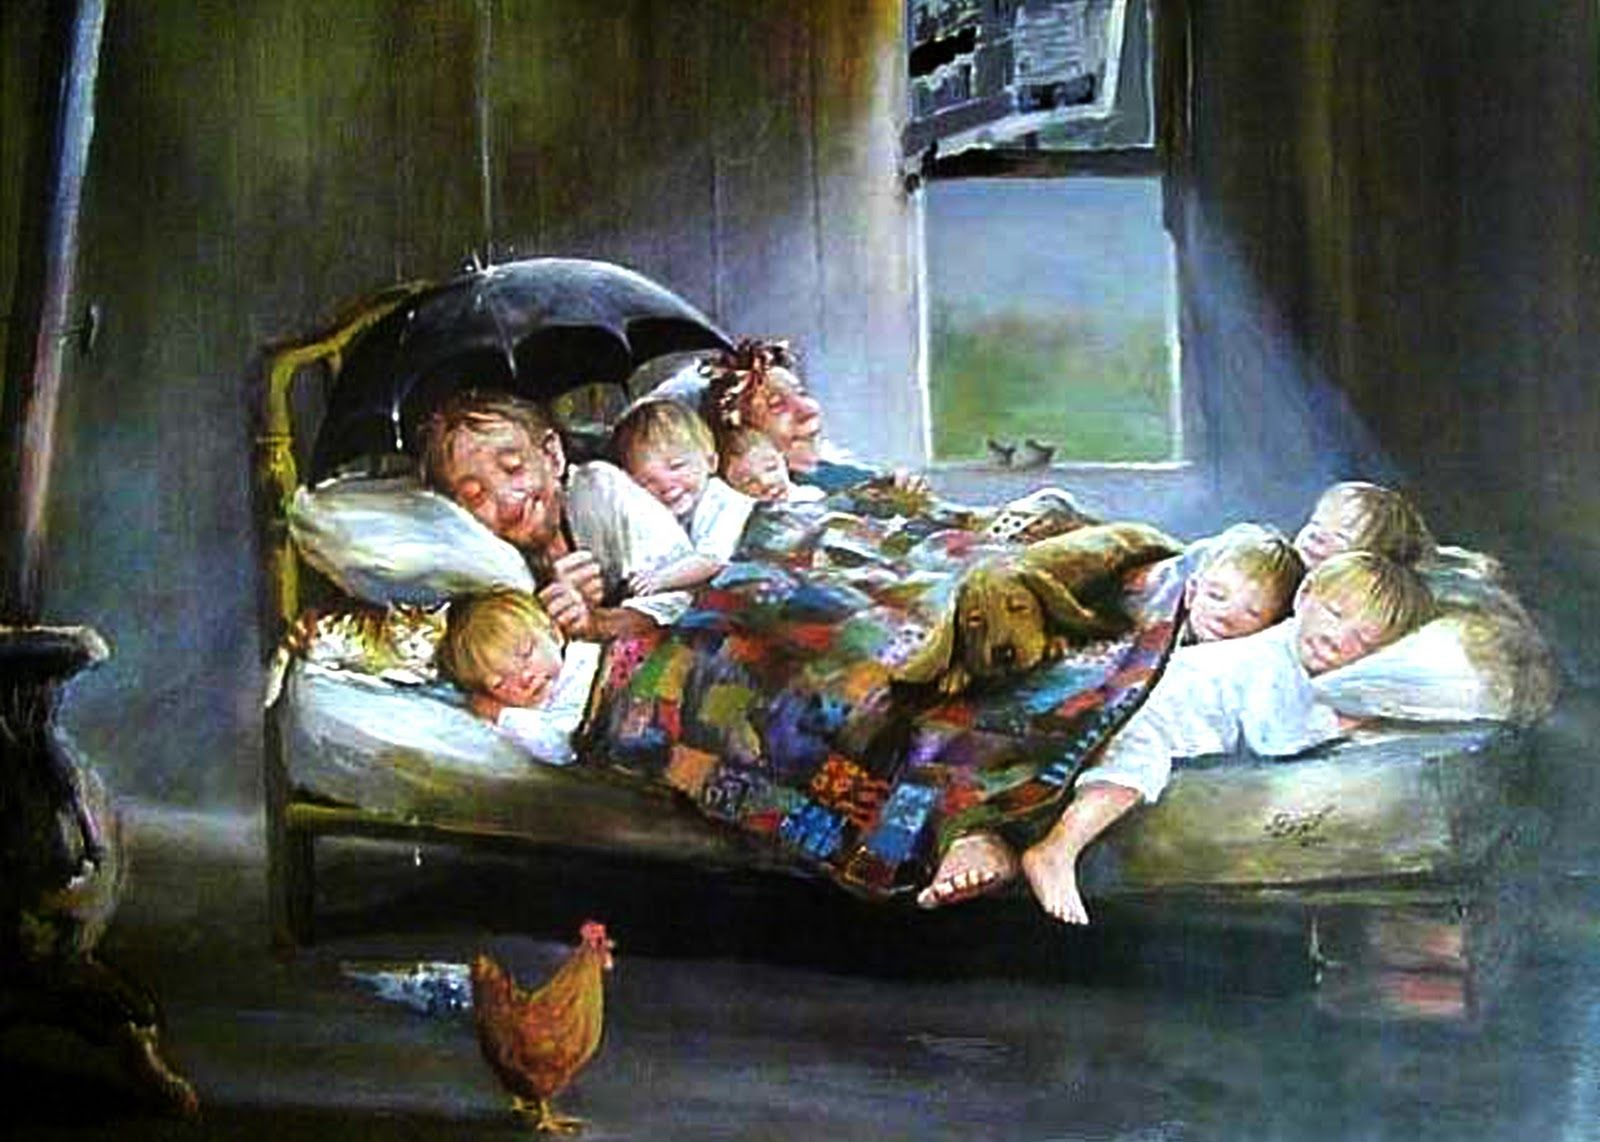 Dianne dengel home sweet home painting of happy family crowded in bed in